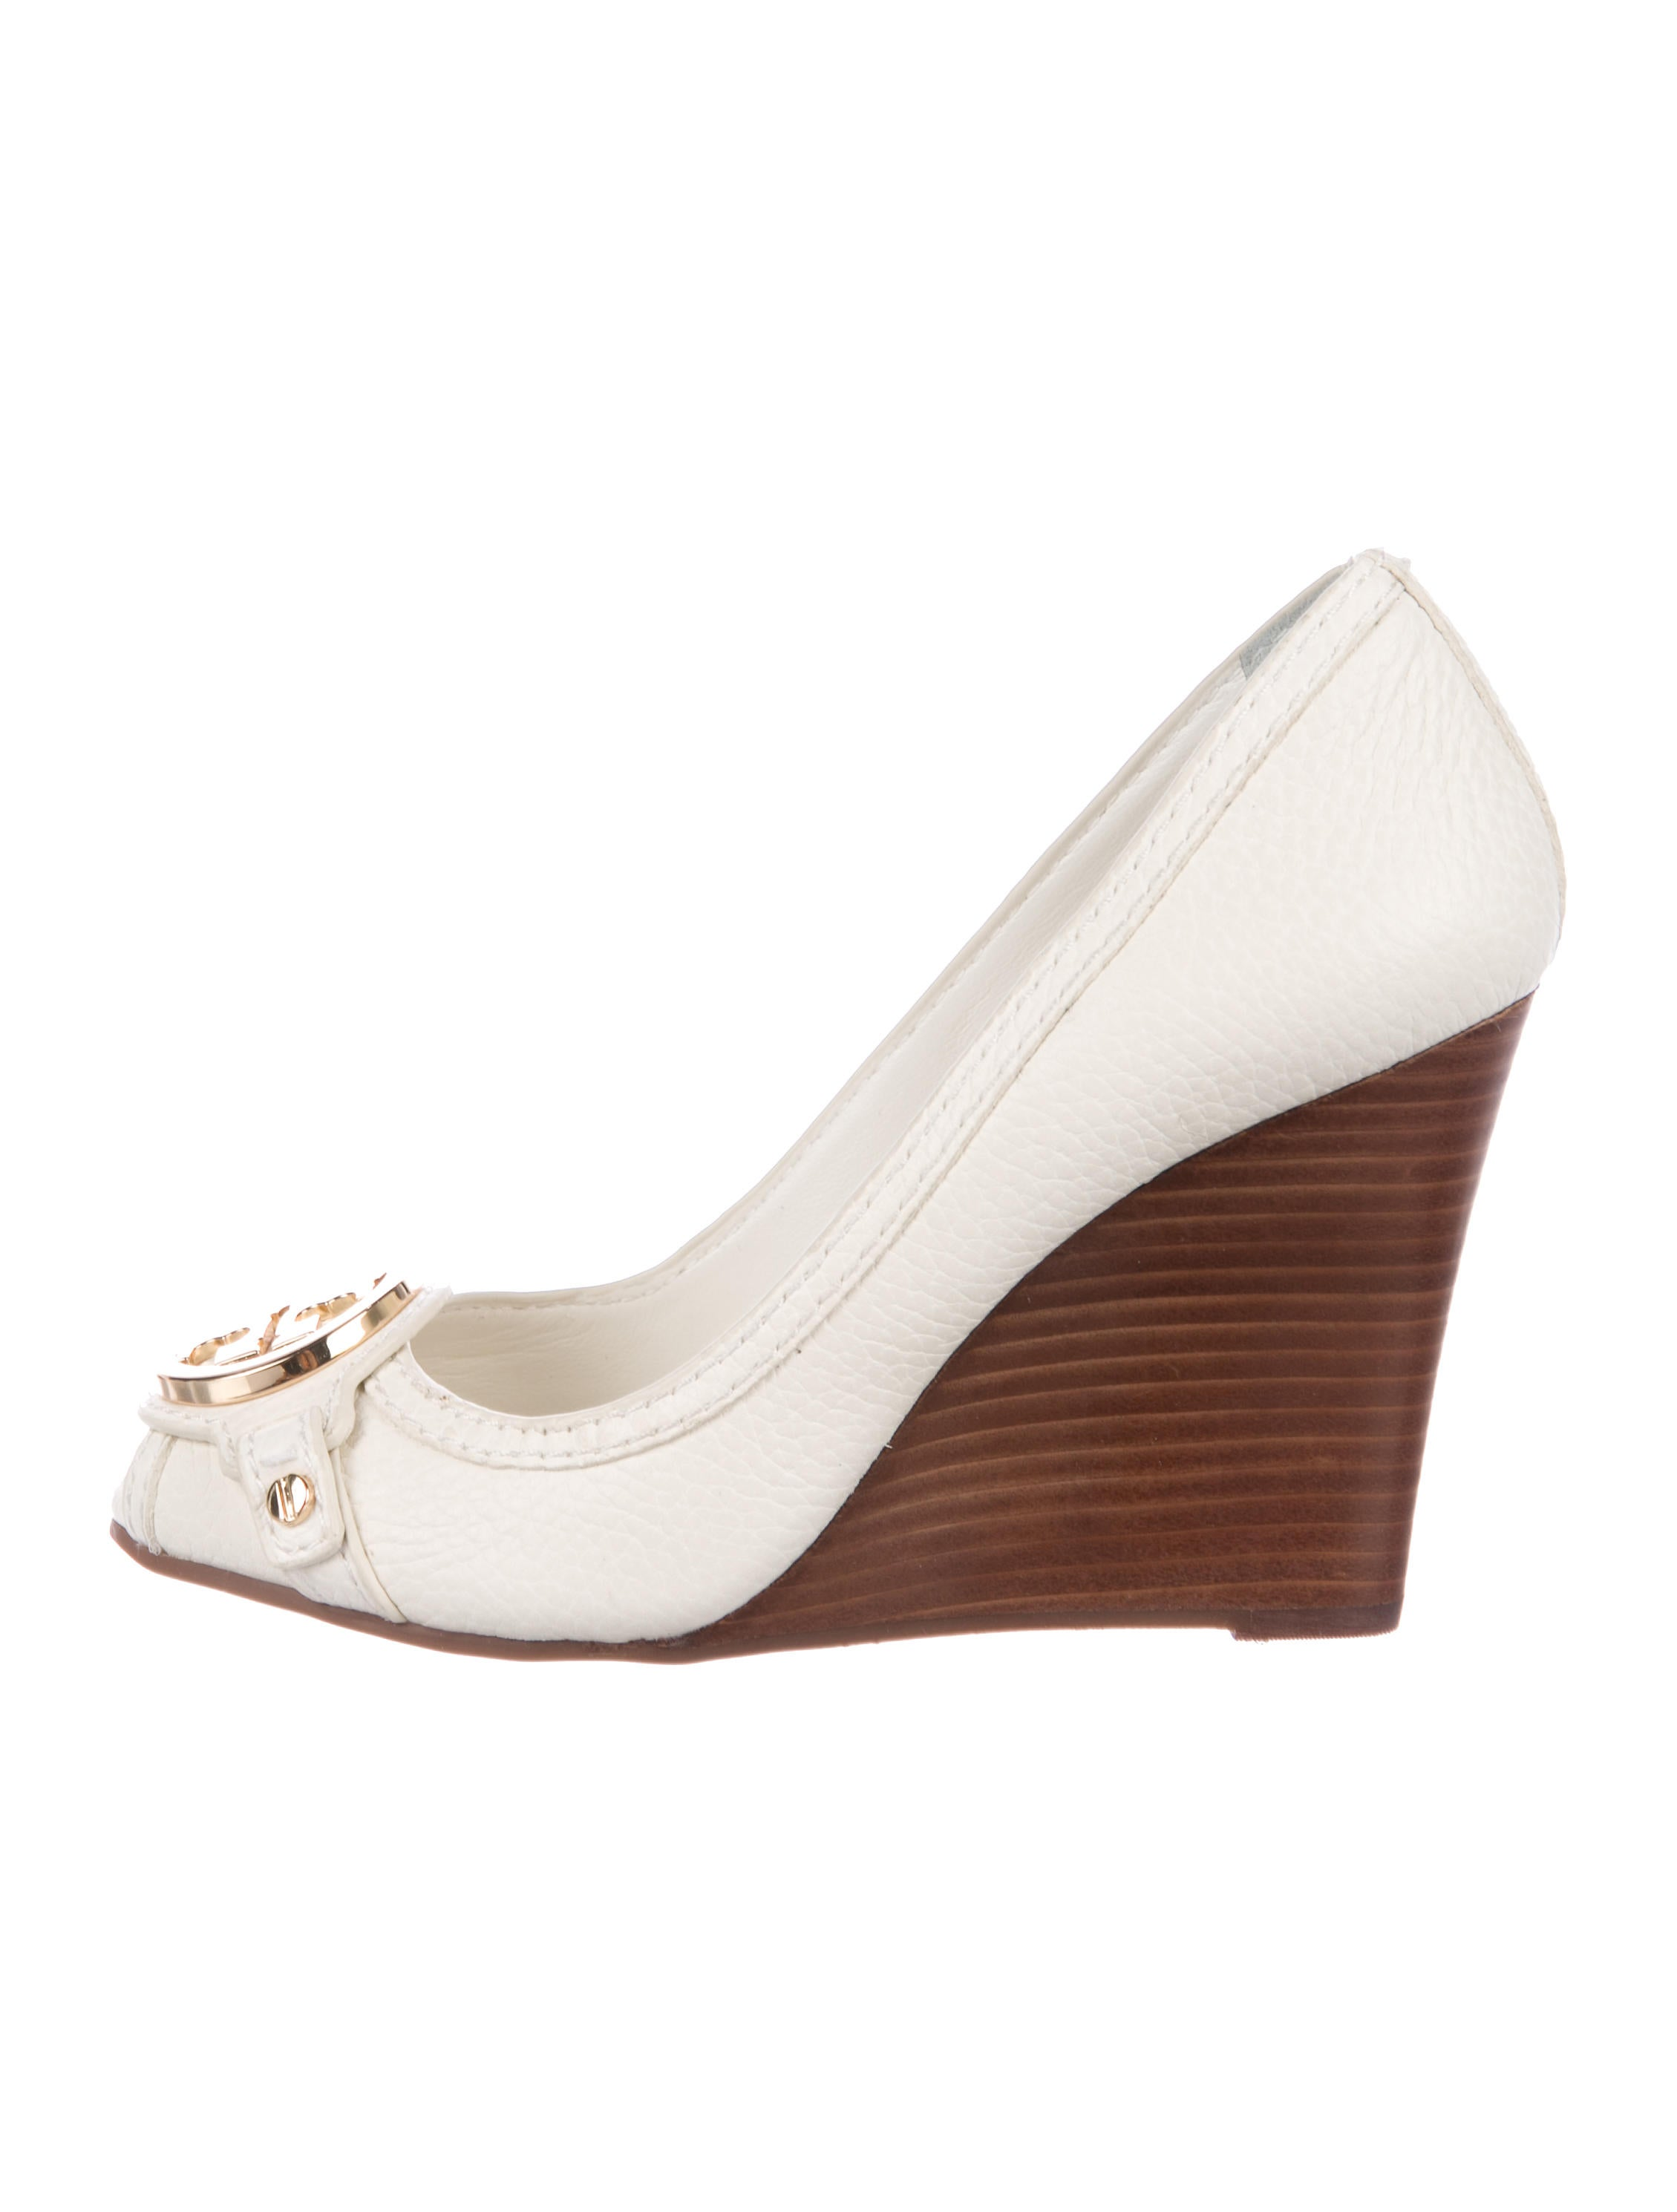 66d28f4ed99 Tory Burch Leticia Peep-Toe Wedge Pumps w  Tags - Shoes - WTO110267 ...